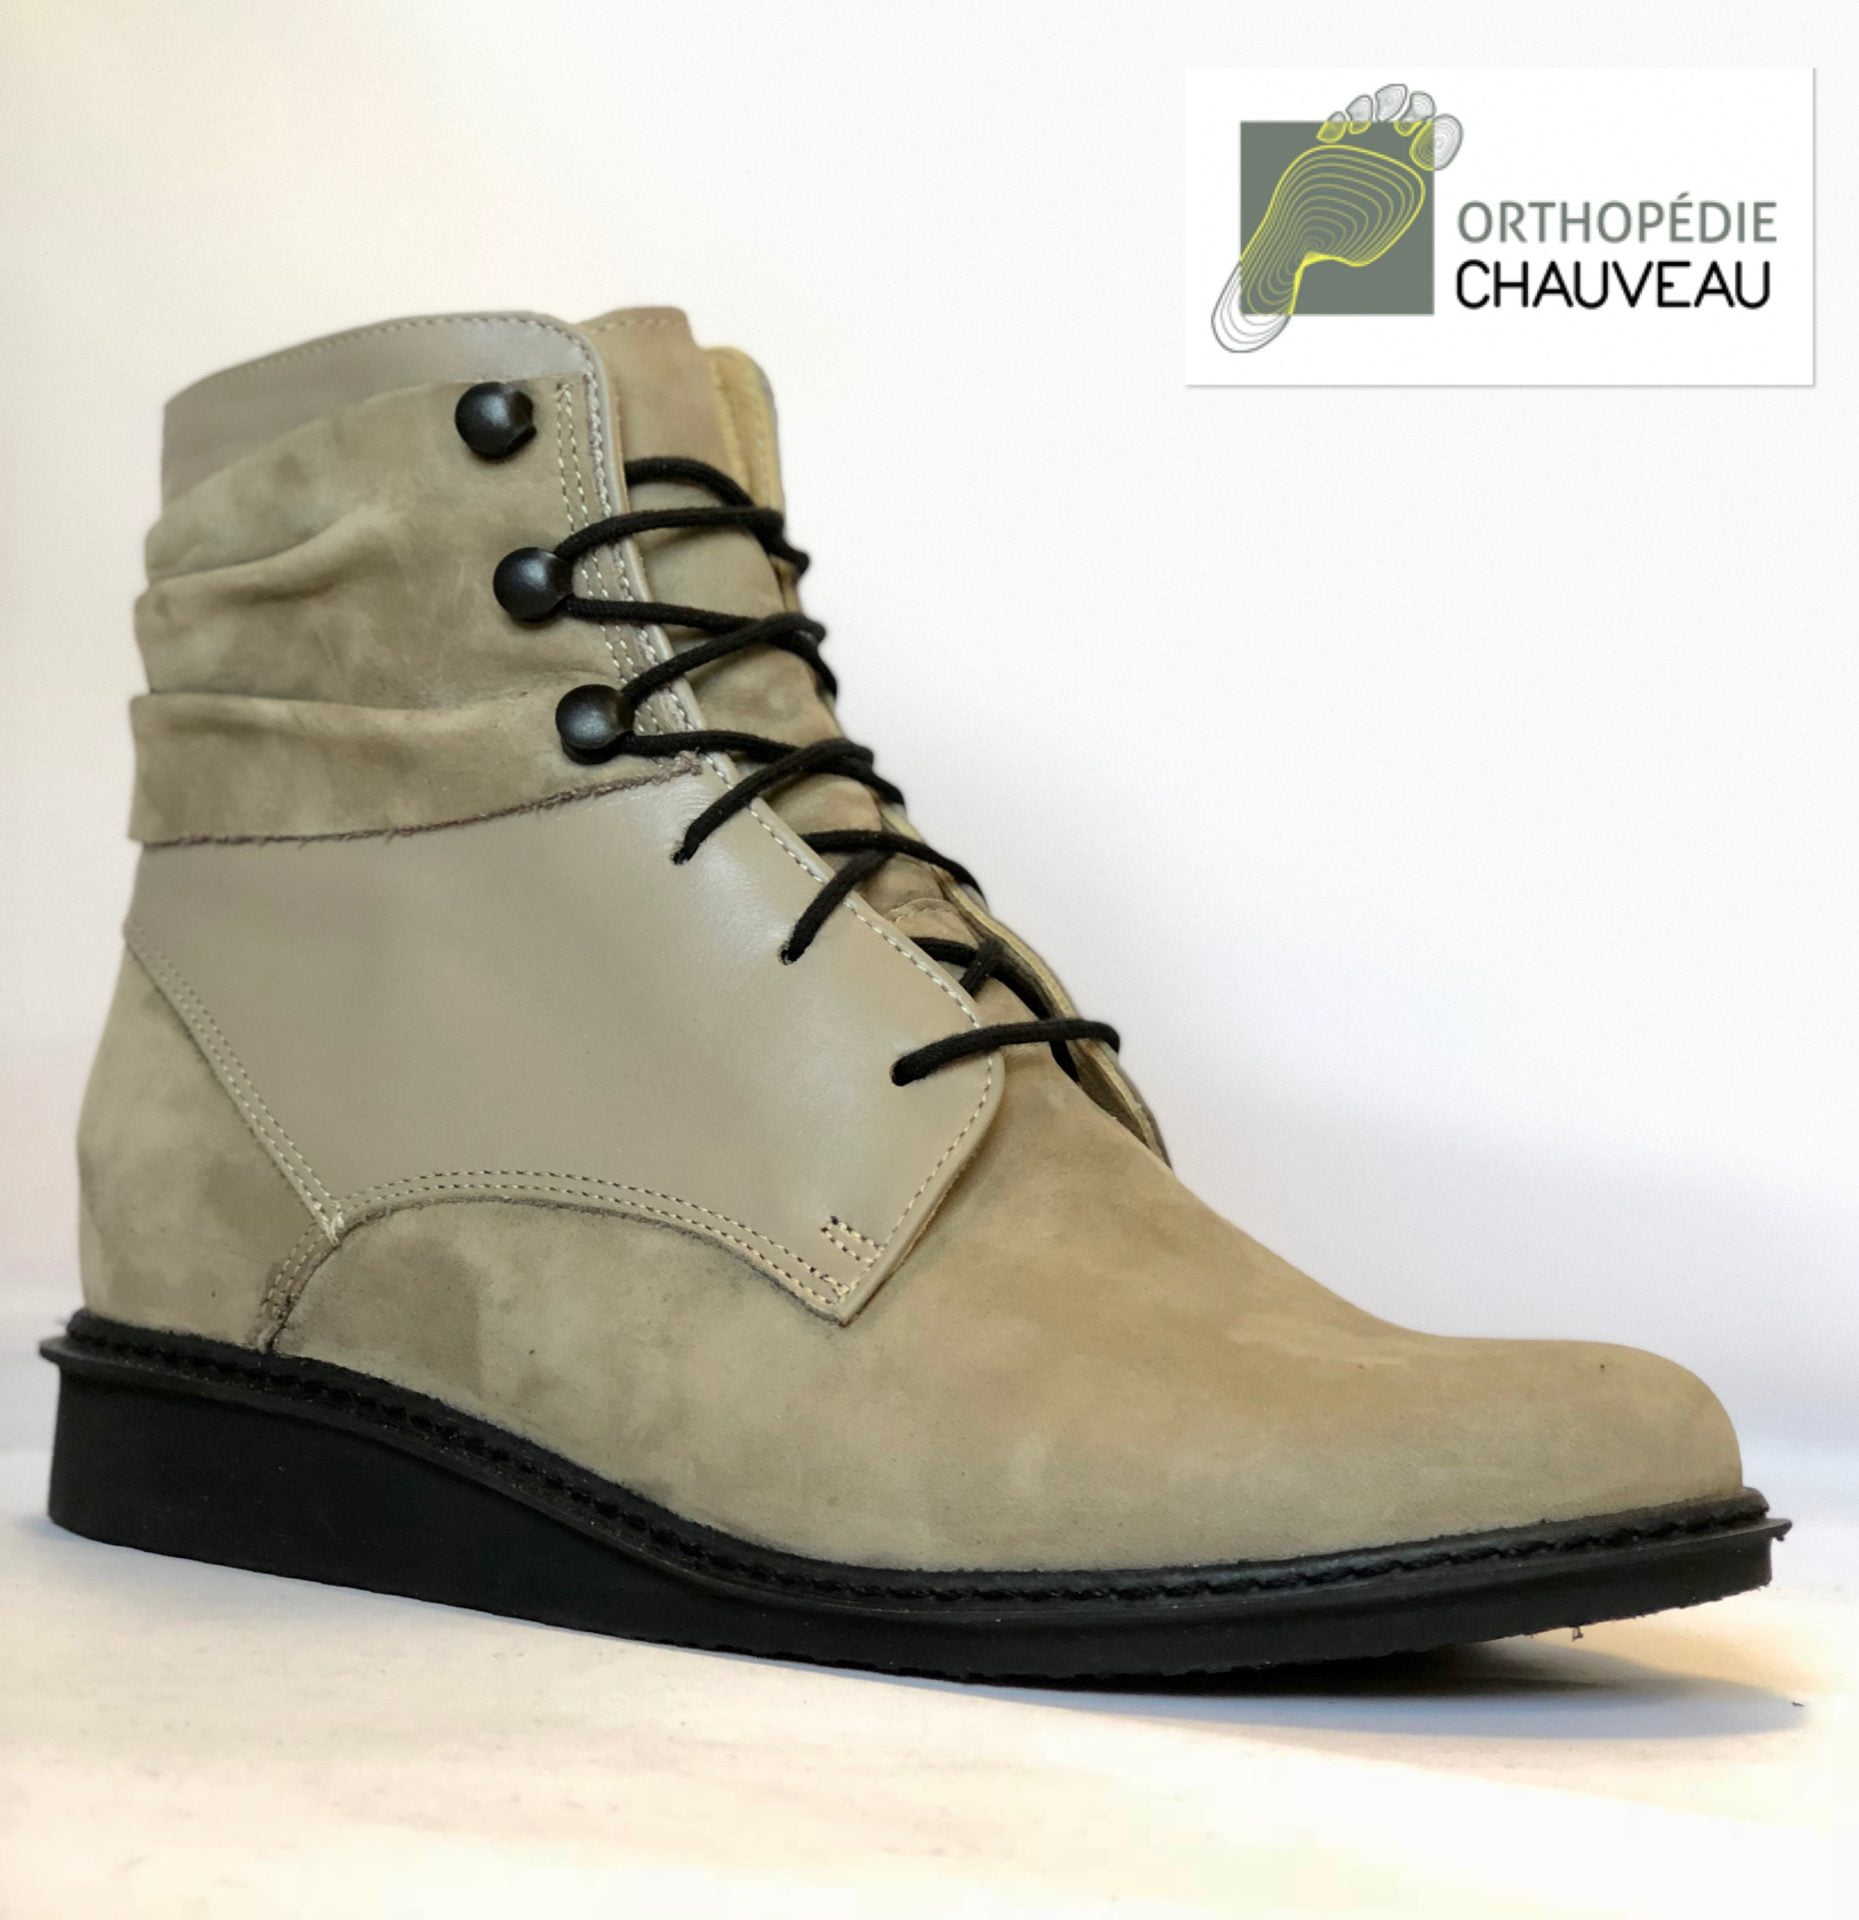 chaussures orthopediques Rennes St Malo bottines